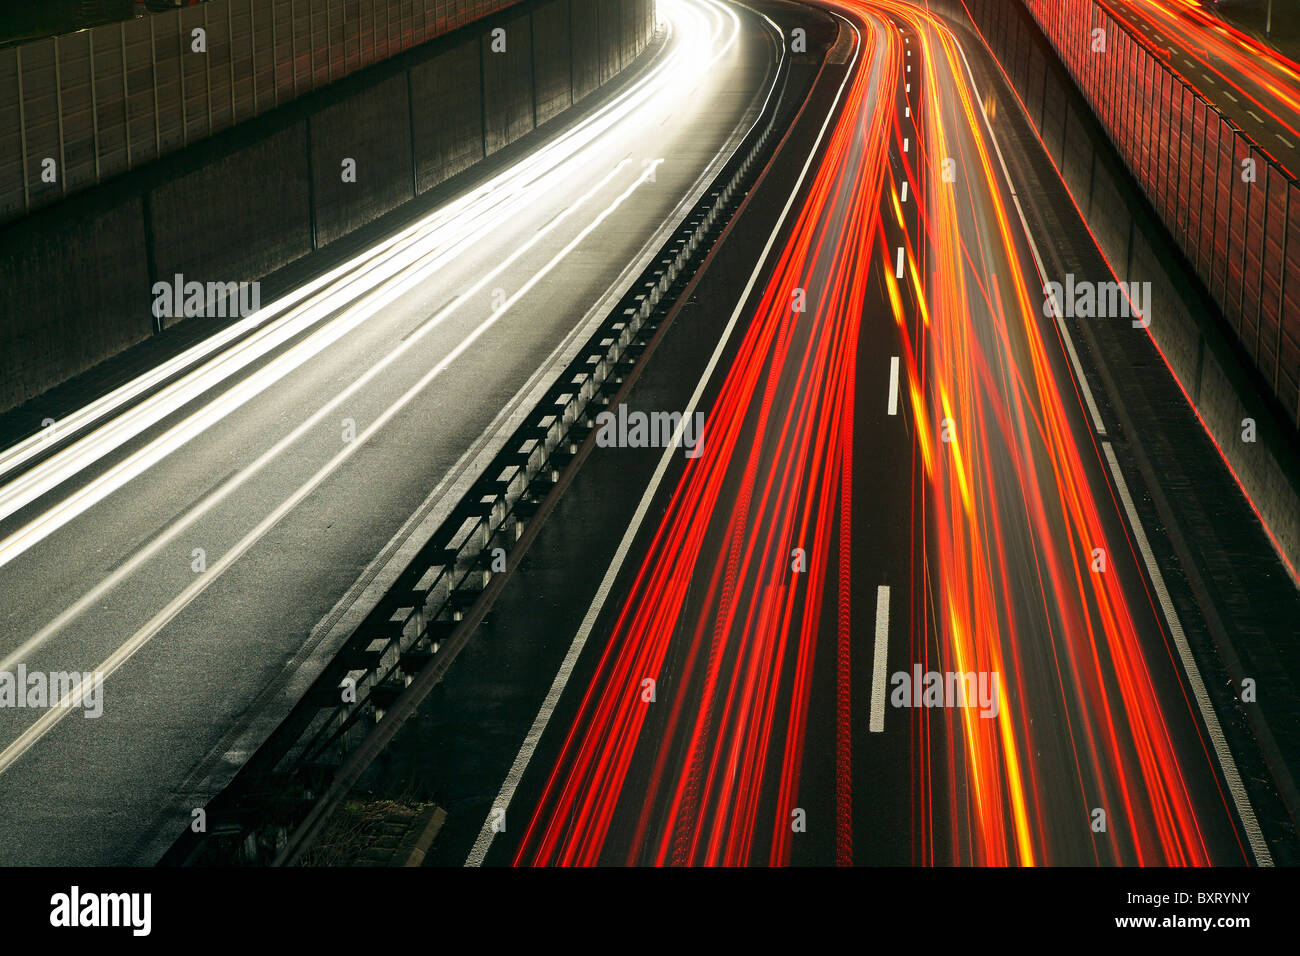 Rush-hour traffic on the A40 highway, Essen, Germany - Stock Image